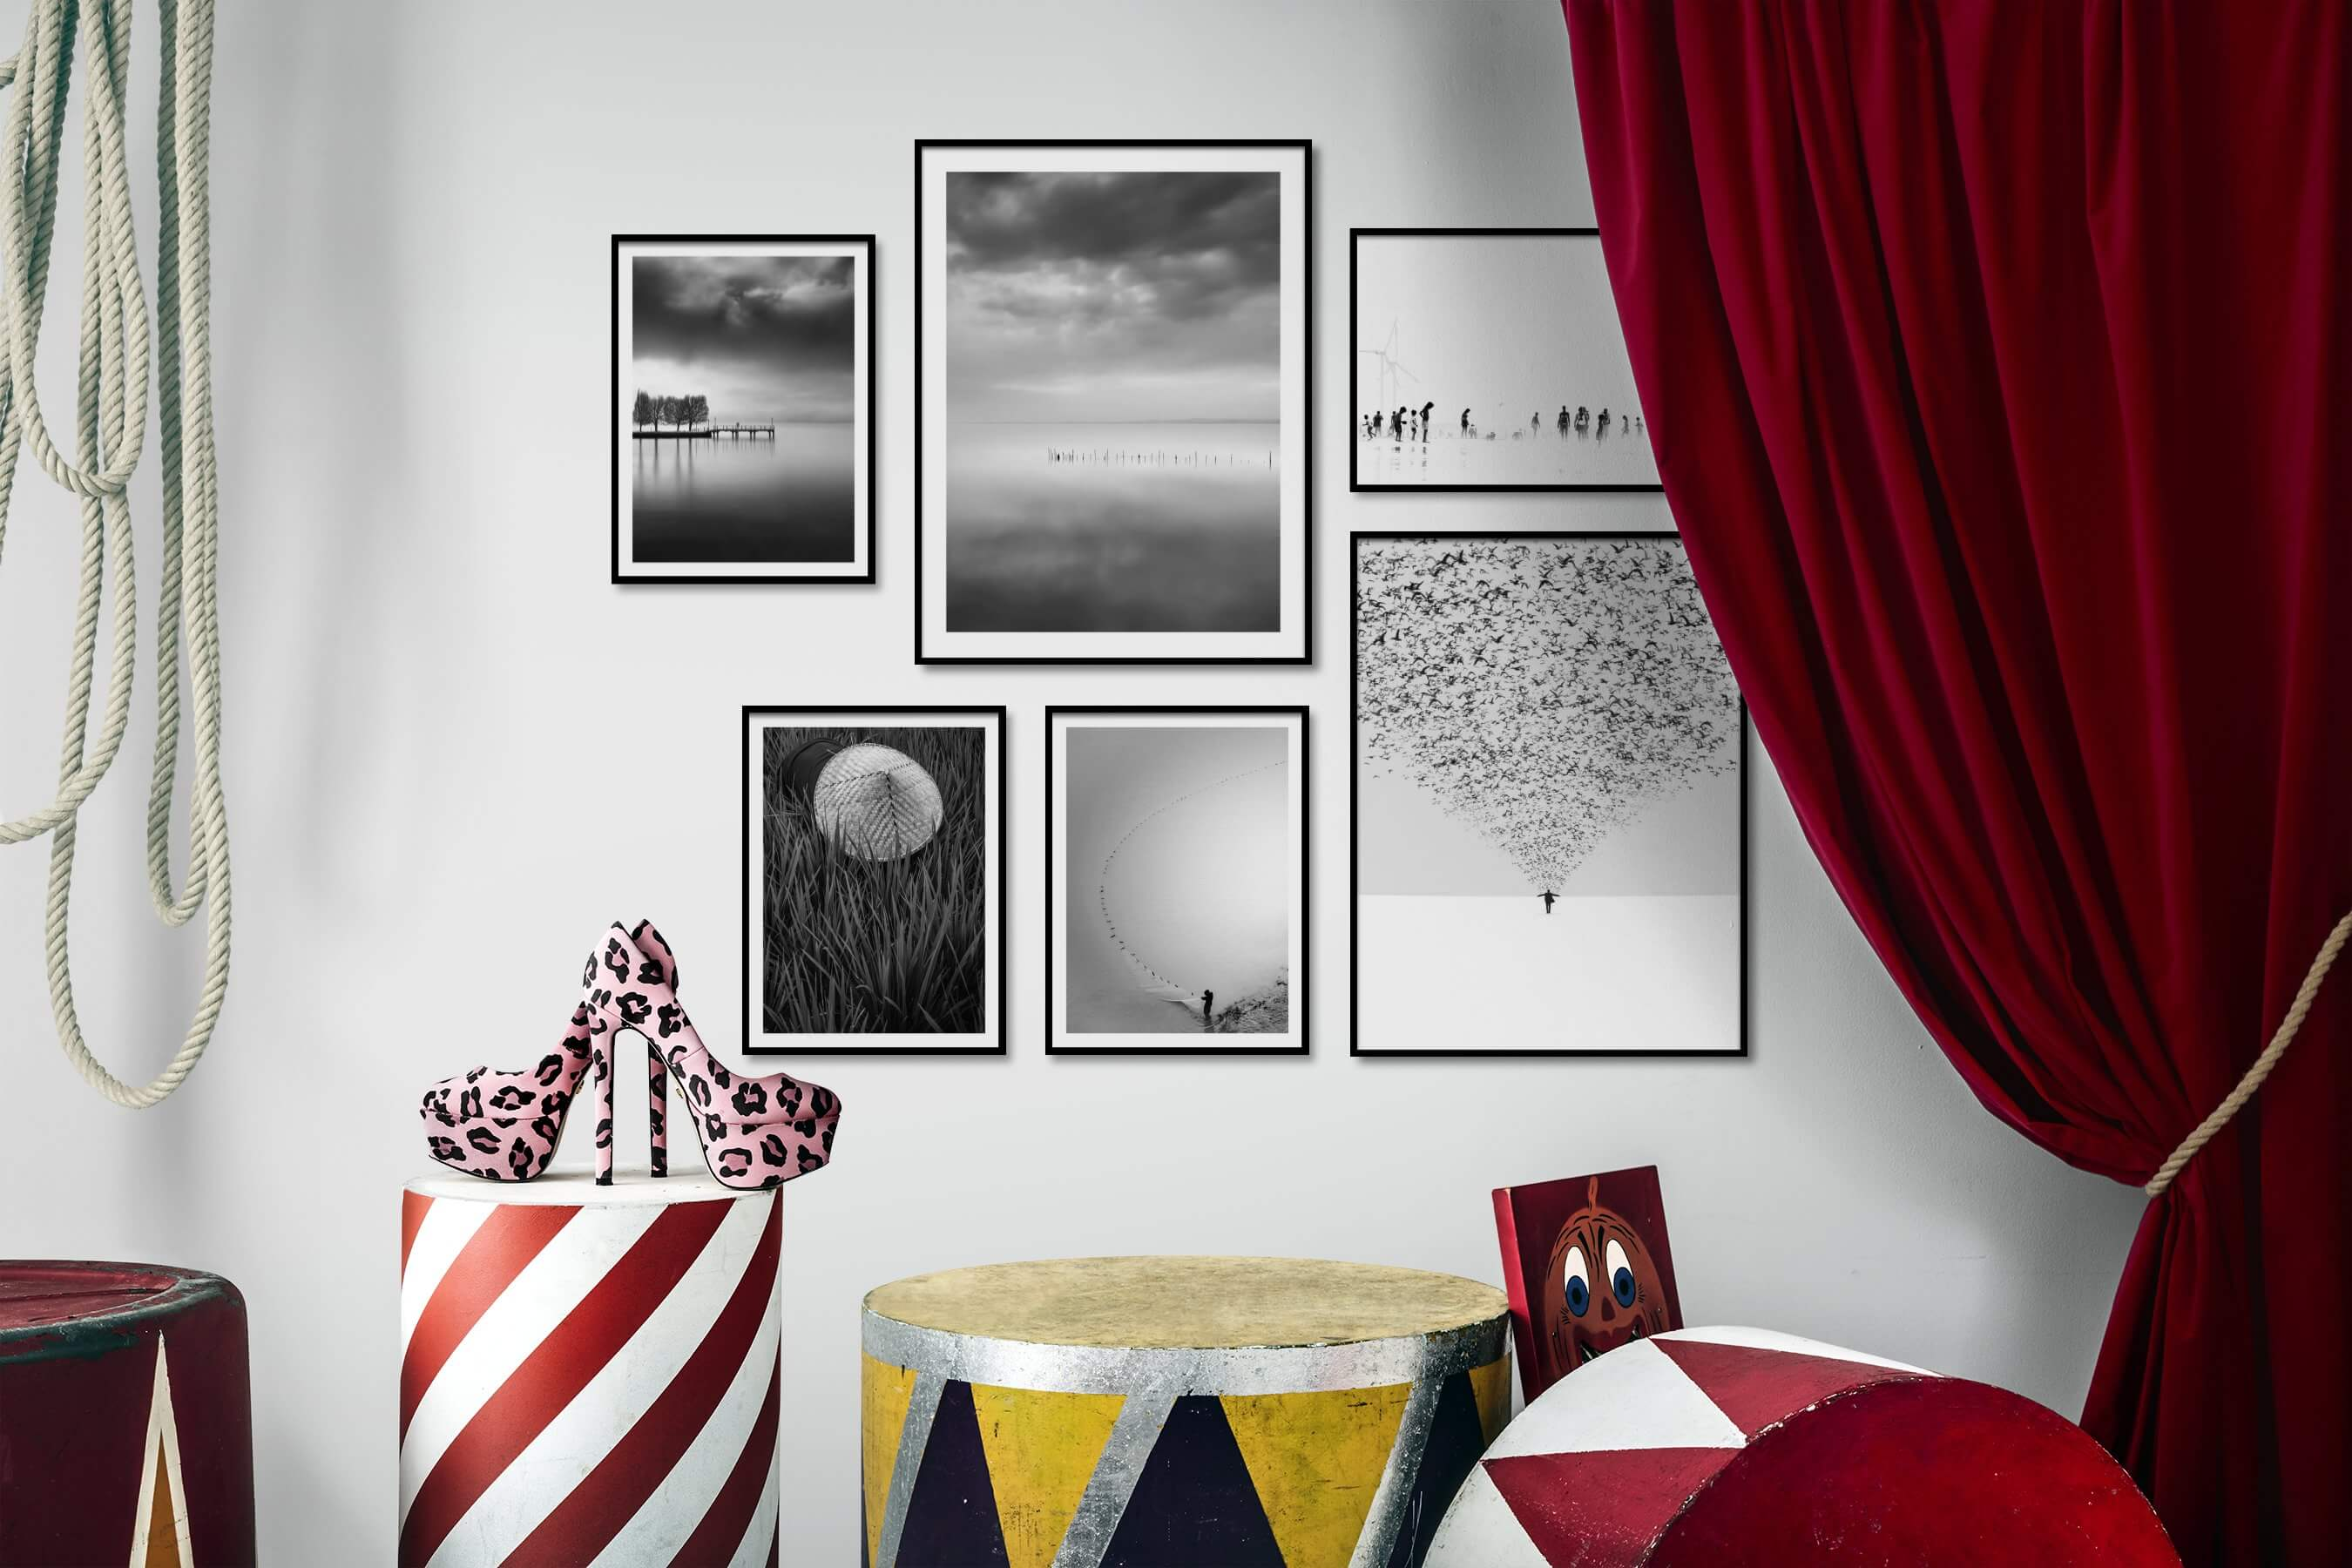 Gallery wall idea with six framed pictures arranged on a wall depicting Black & White, Beach & Water, Mindfulness, Country Life, For the Minimalist, Bright Tones, and Animals